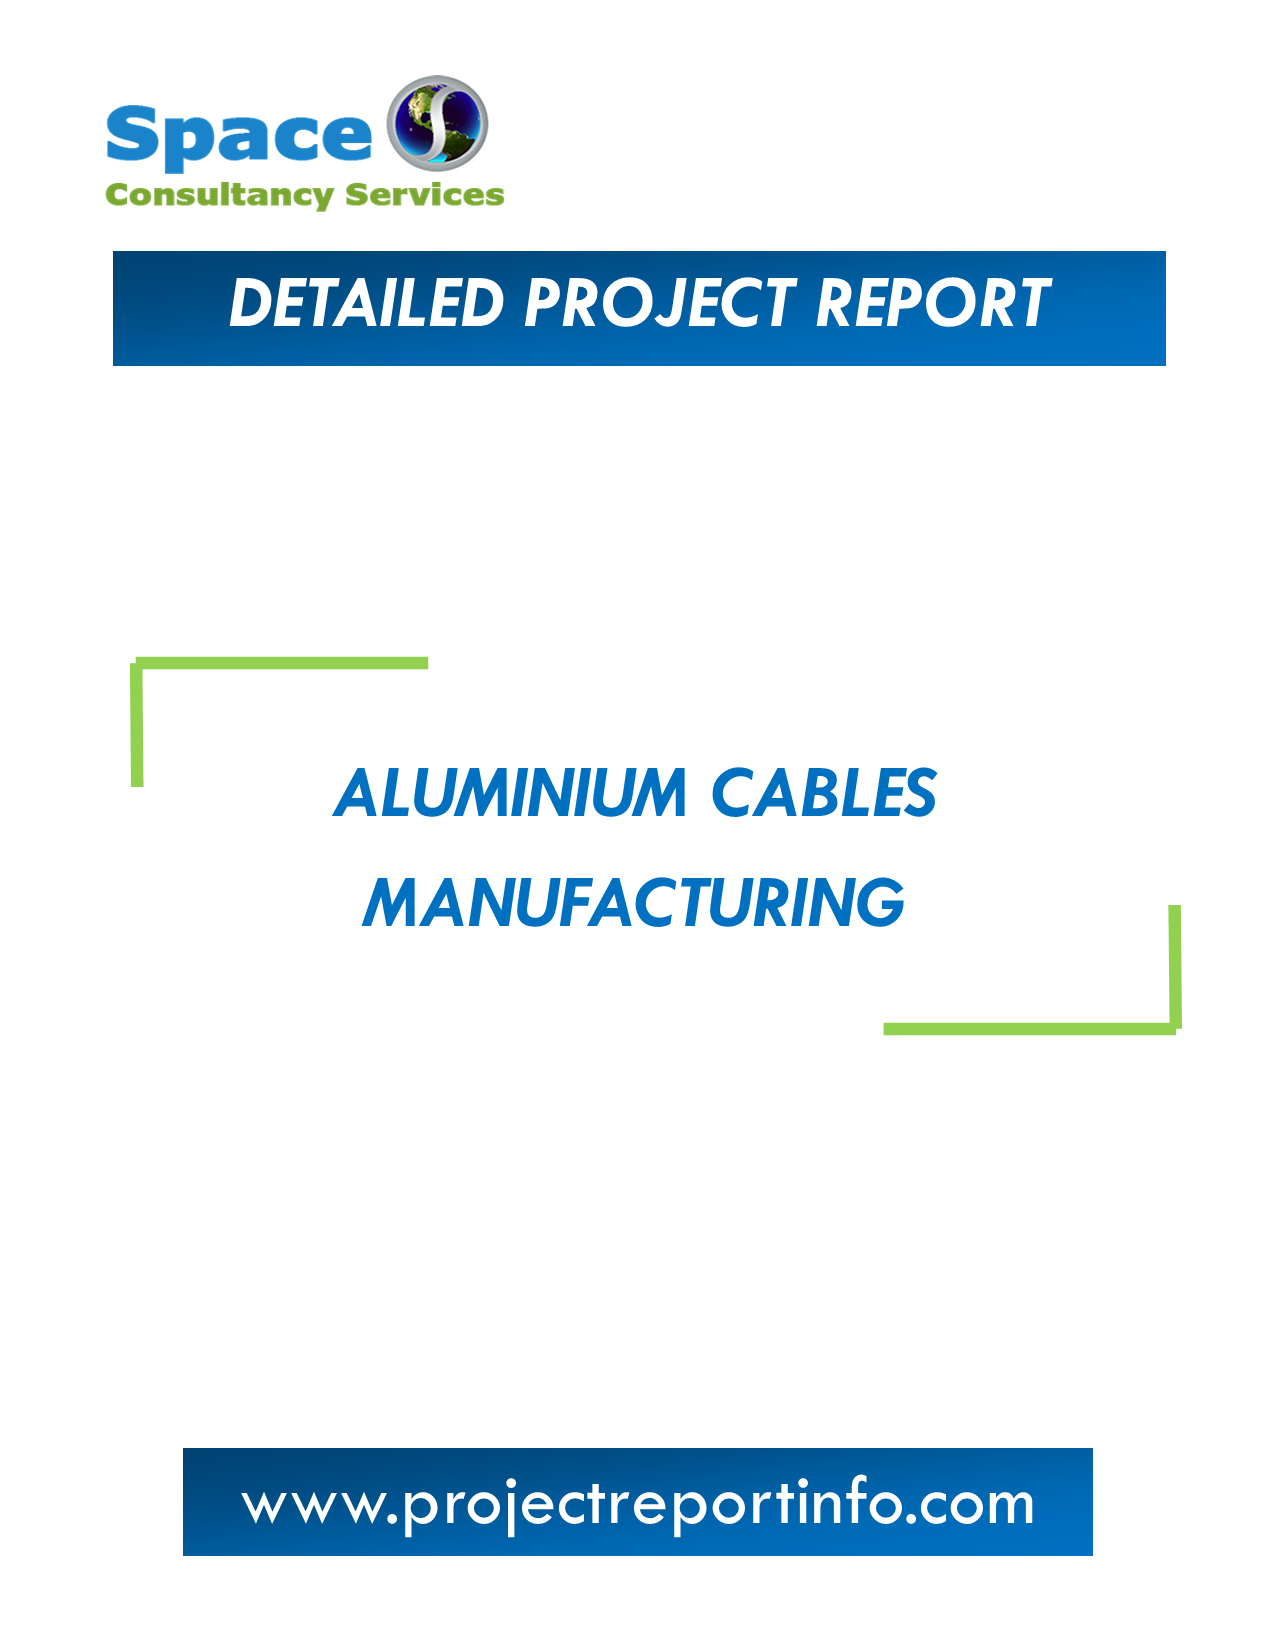 Project Report on Aluminium Cables Manufacturing